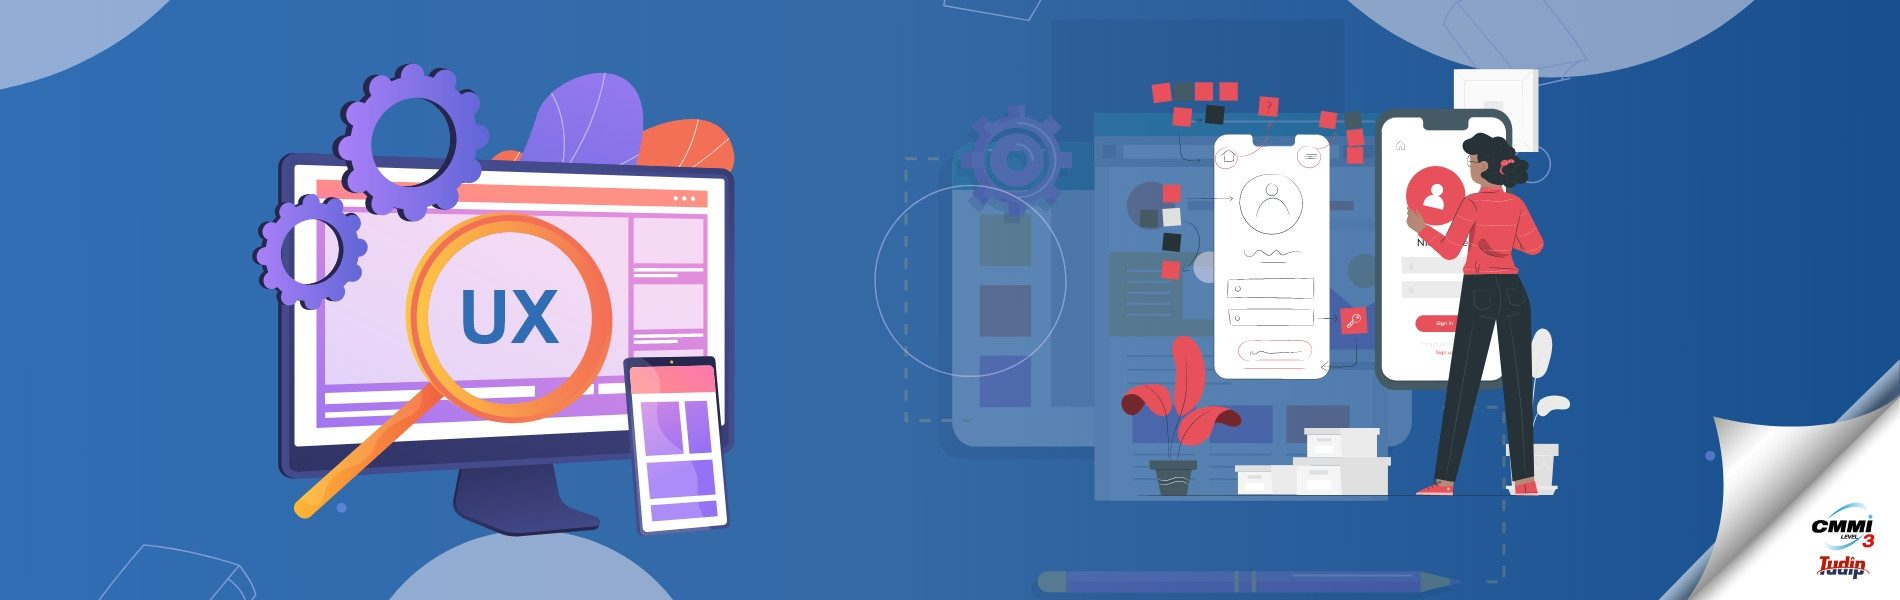 3 Must-Follow Design Principles for a Better User Experience (UX)